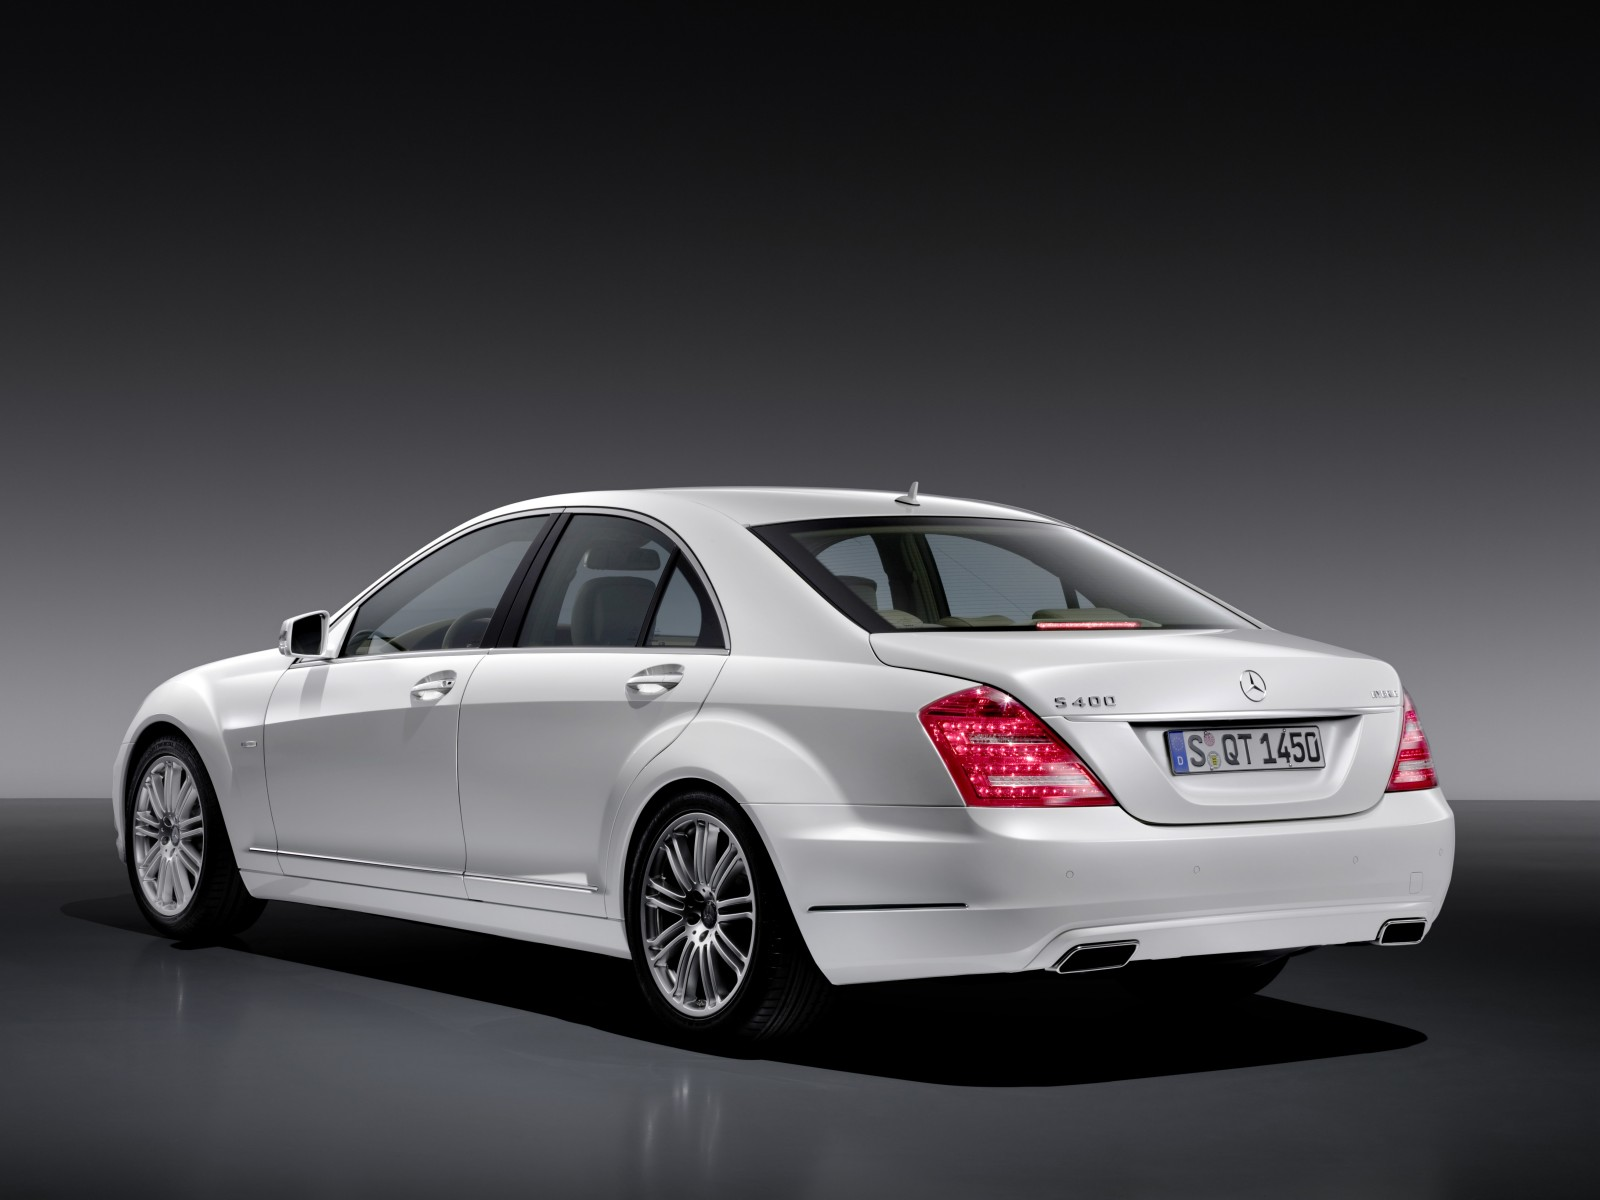 Mercedes benz s 400 hybrid technical details history for Mercedes benz hybrids